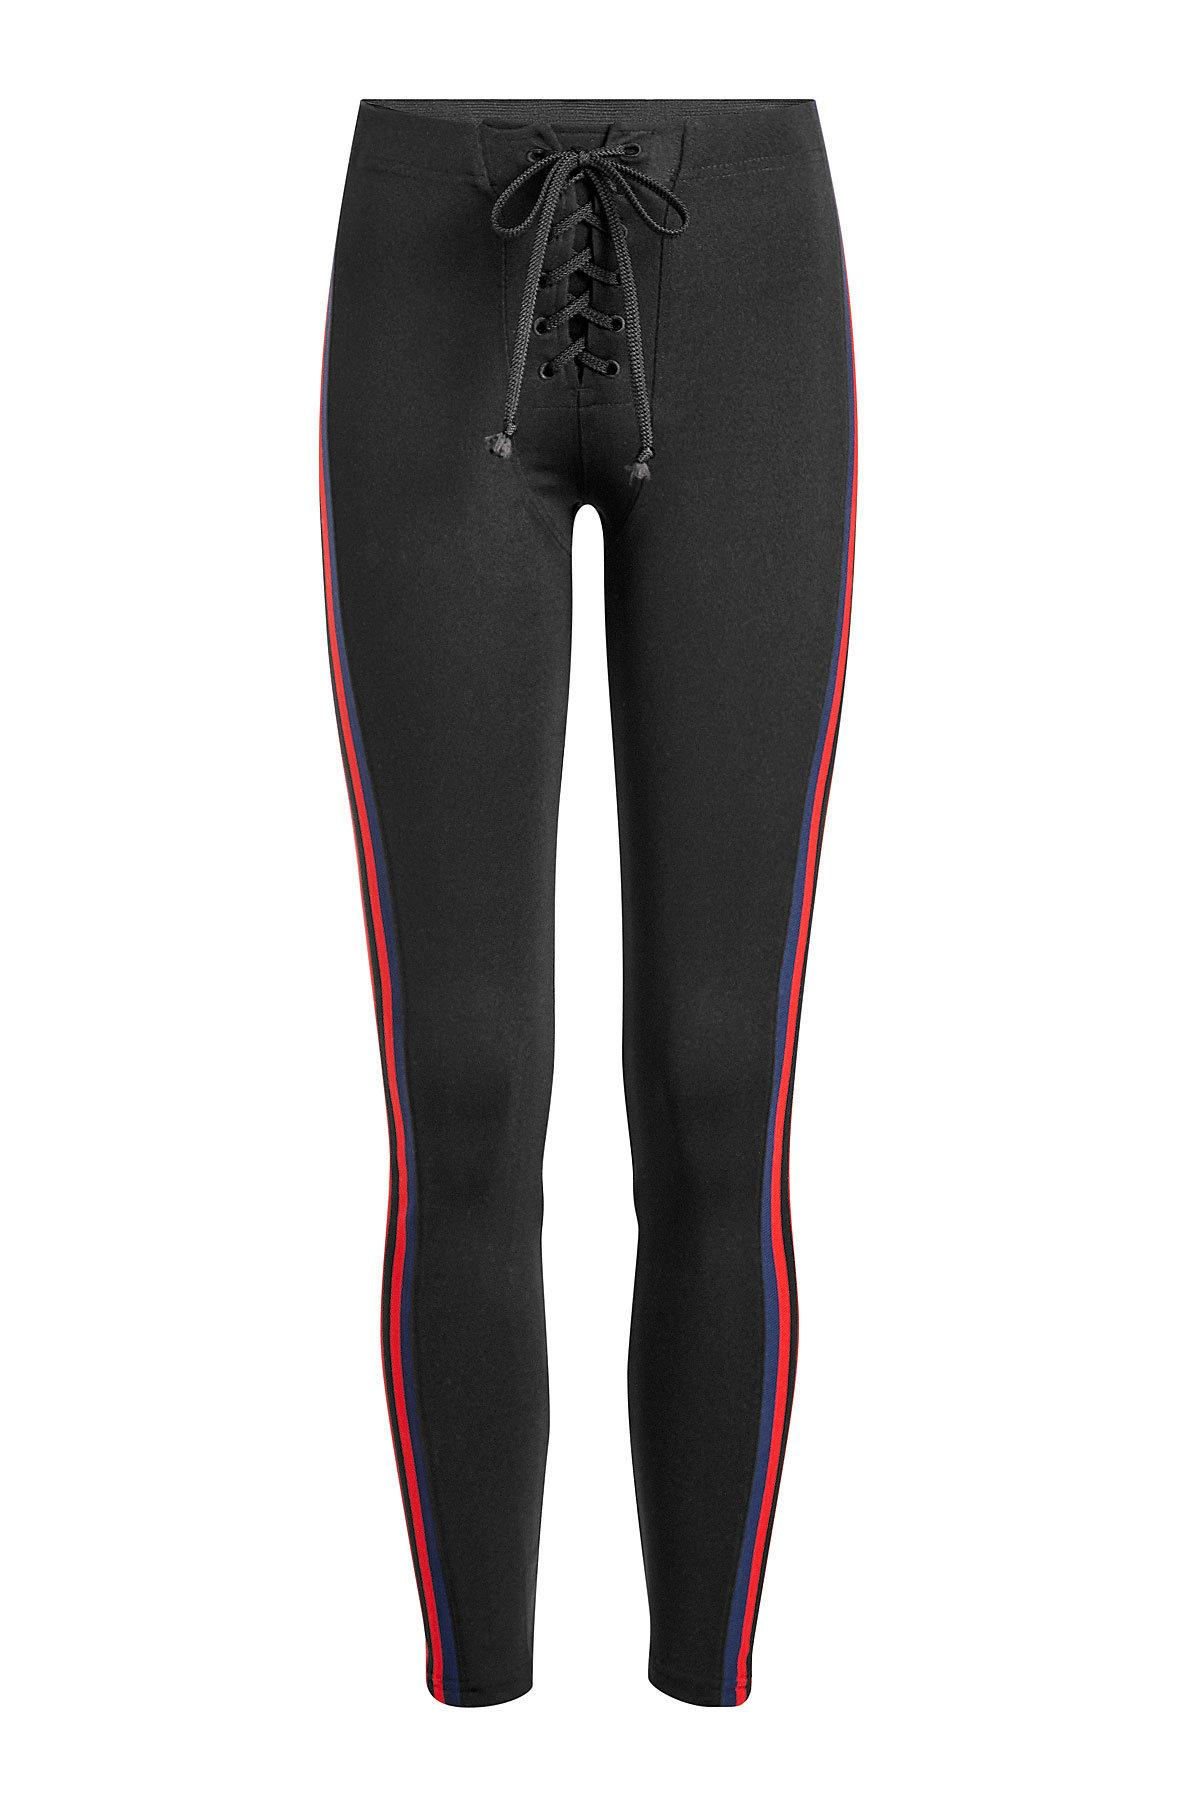 8863b31cb620c Yeezy Leggings With Lace-Up Front In Black | ModeSens